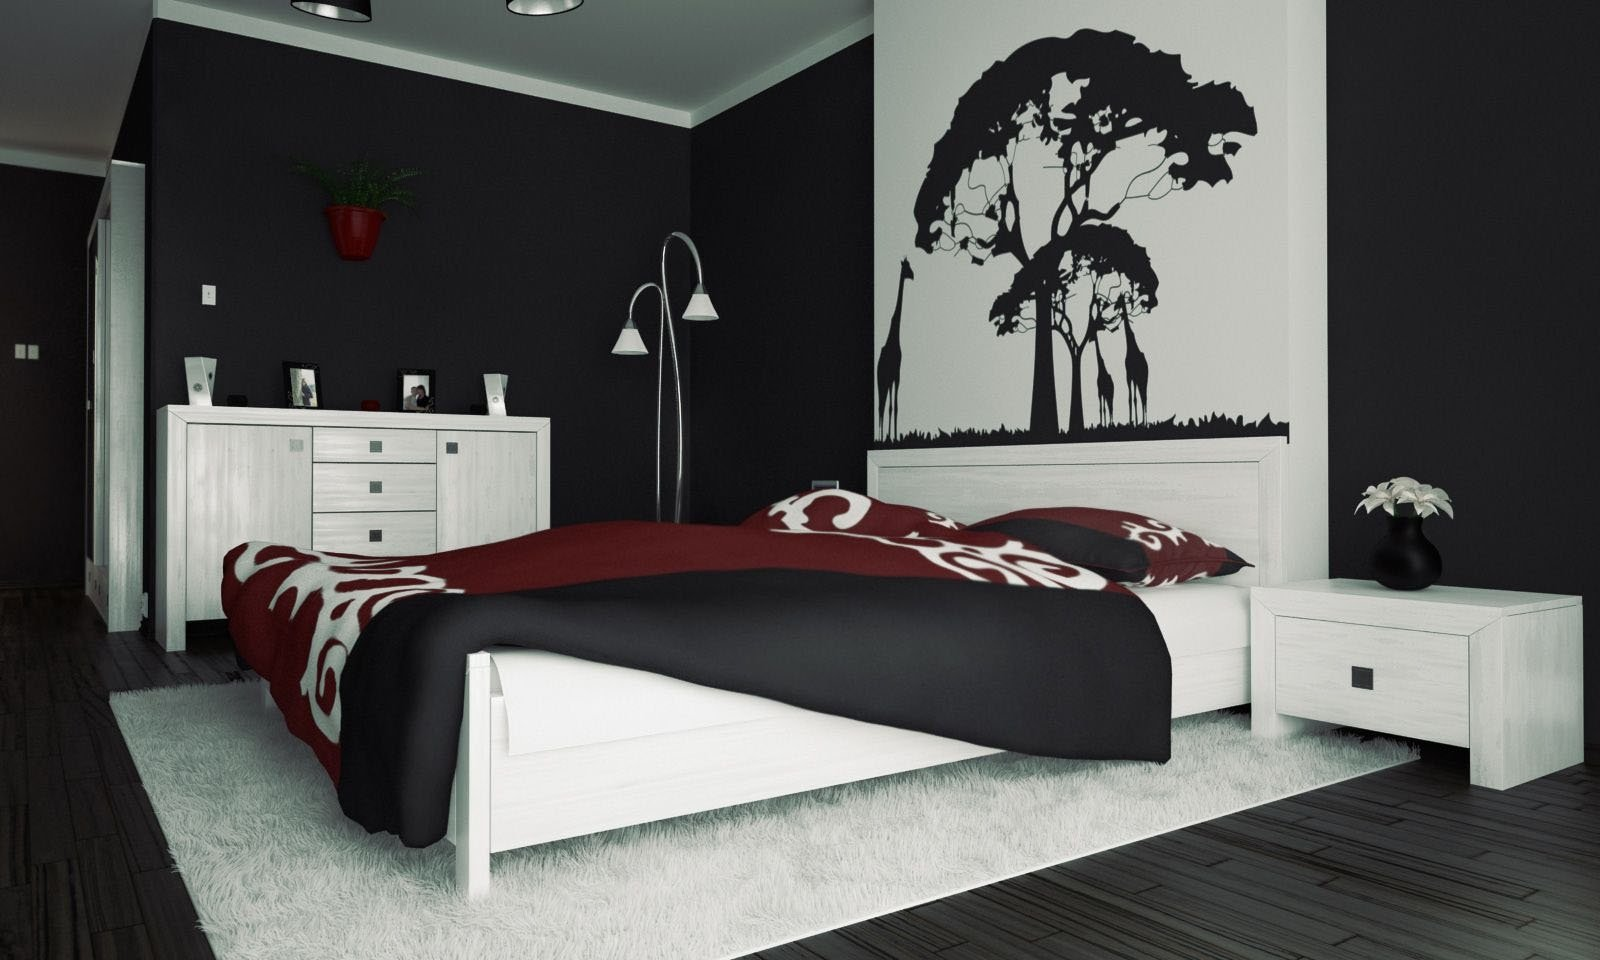 10 Trendy Red And Black Room Ideas black and red bedroom ideas internetunblock internetunblock 2021